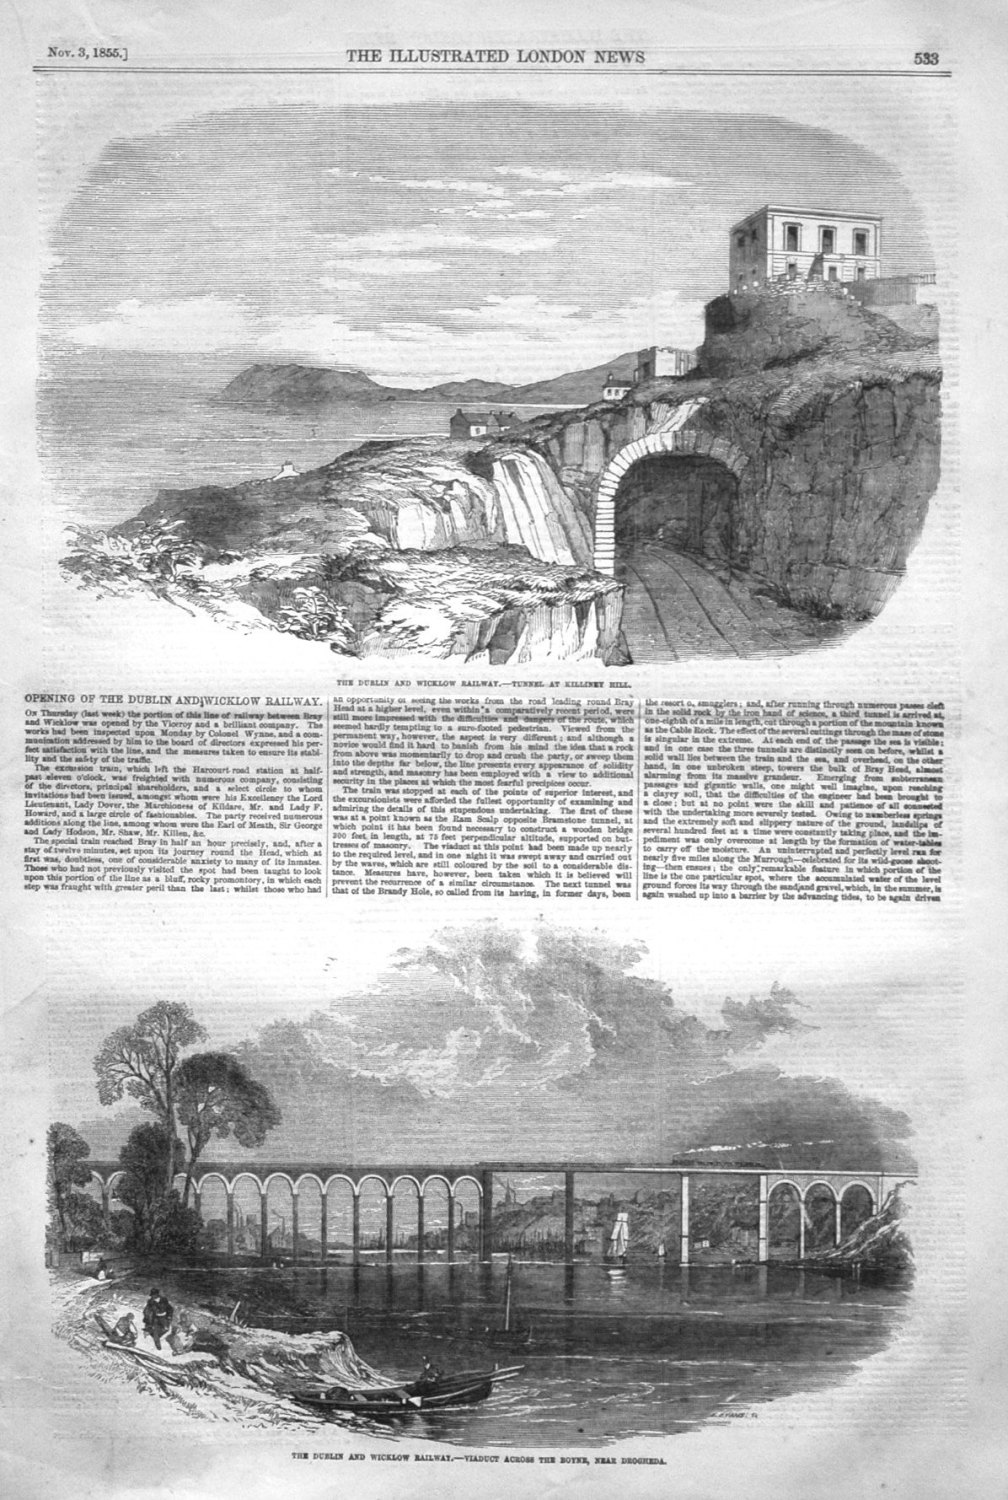 The Dublin and Wicklow Railway. - Tunnel at Killiney Hill. 1855